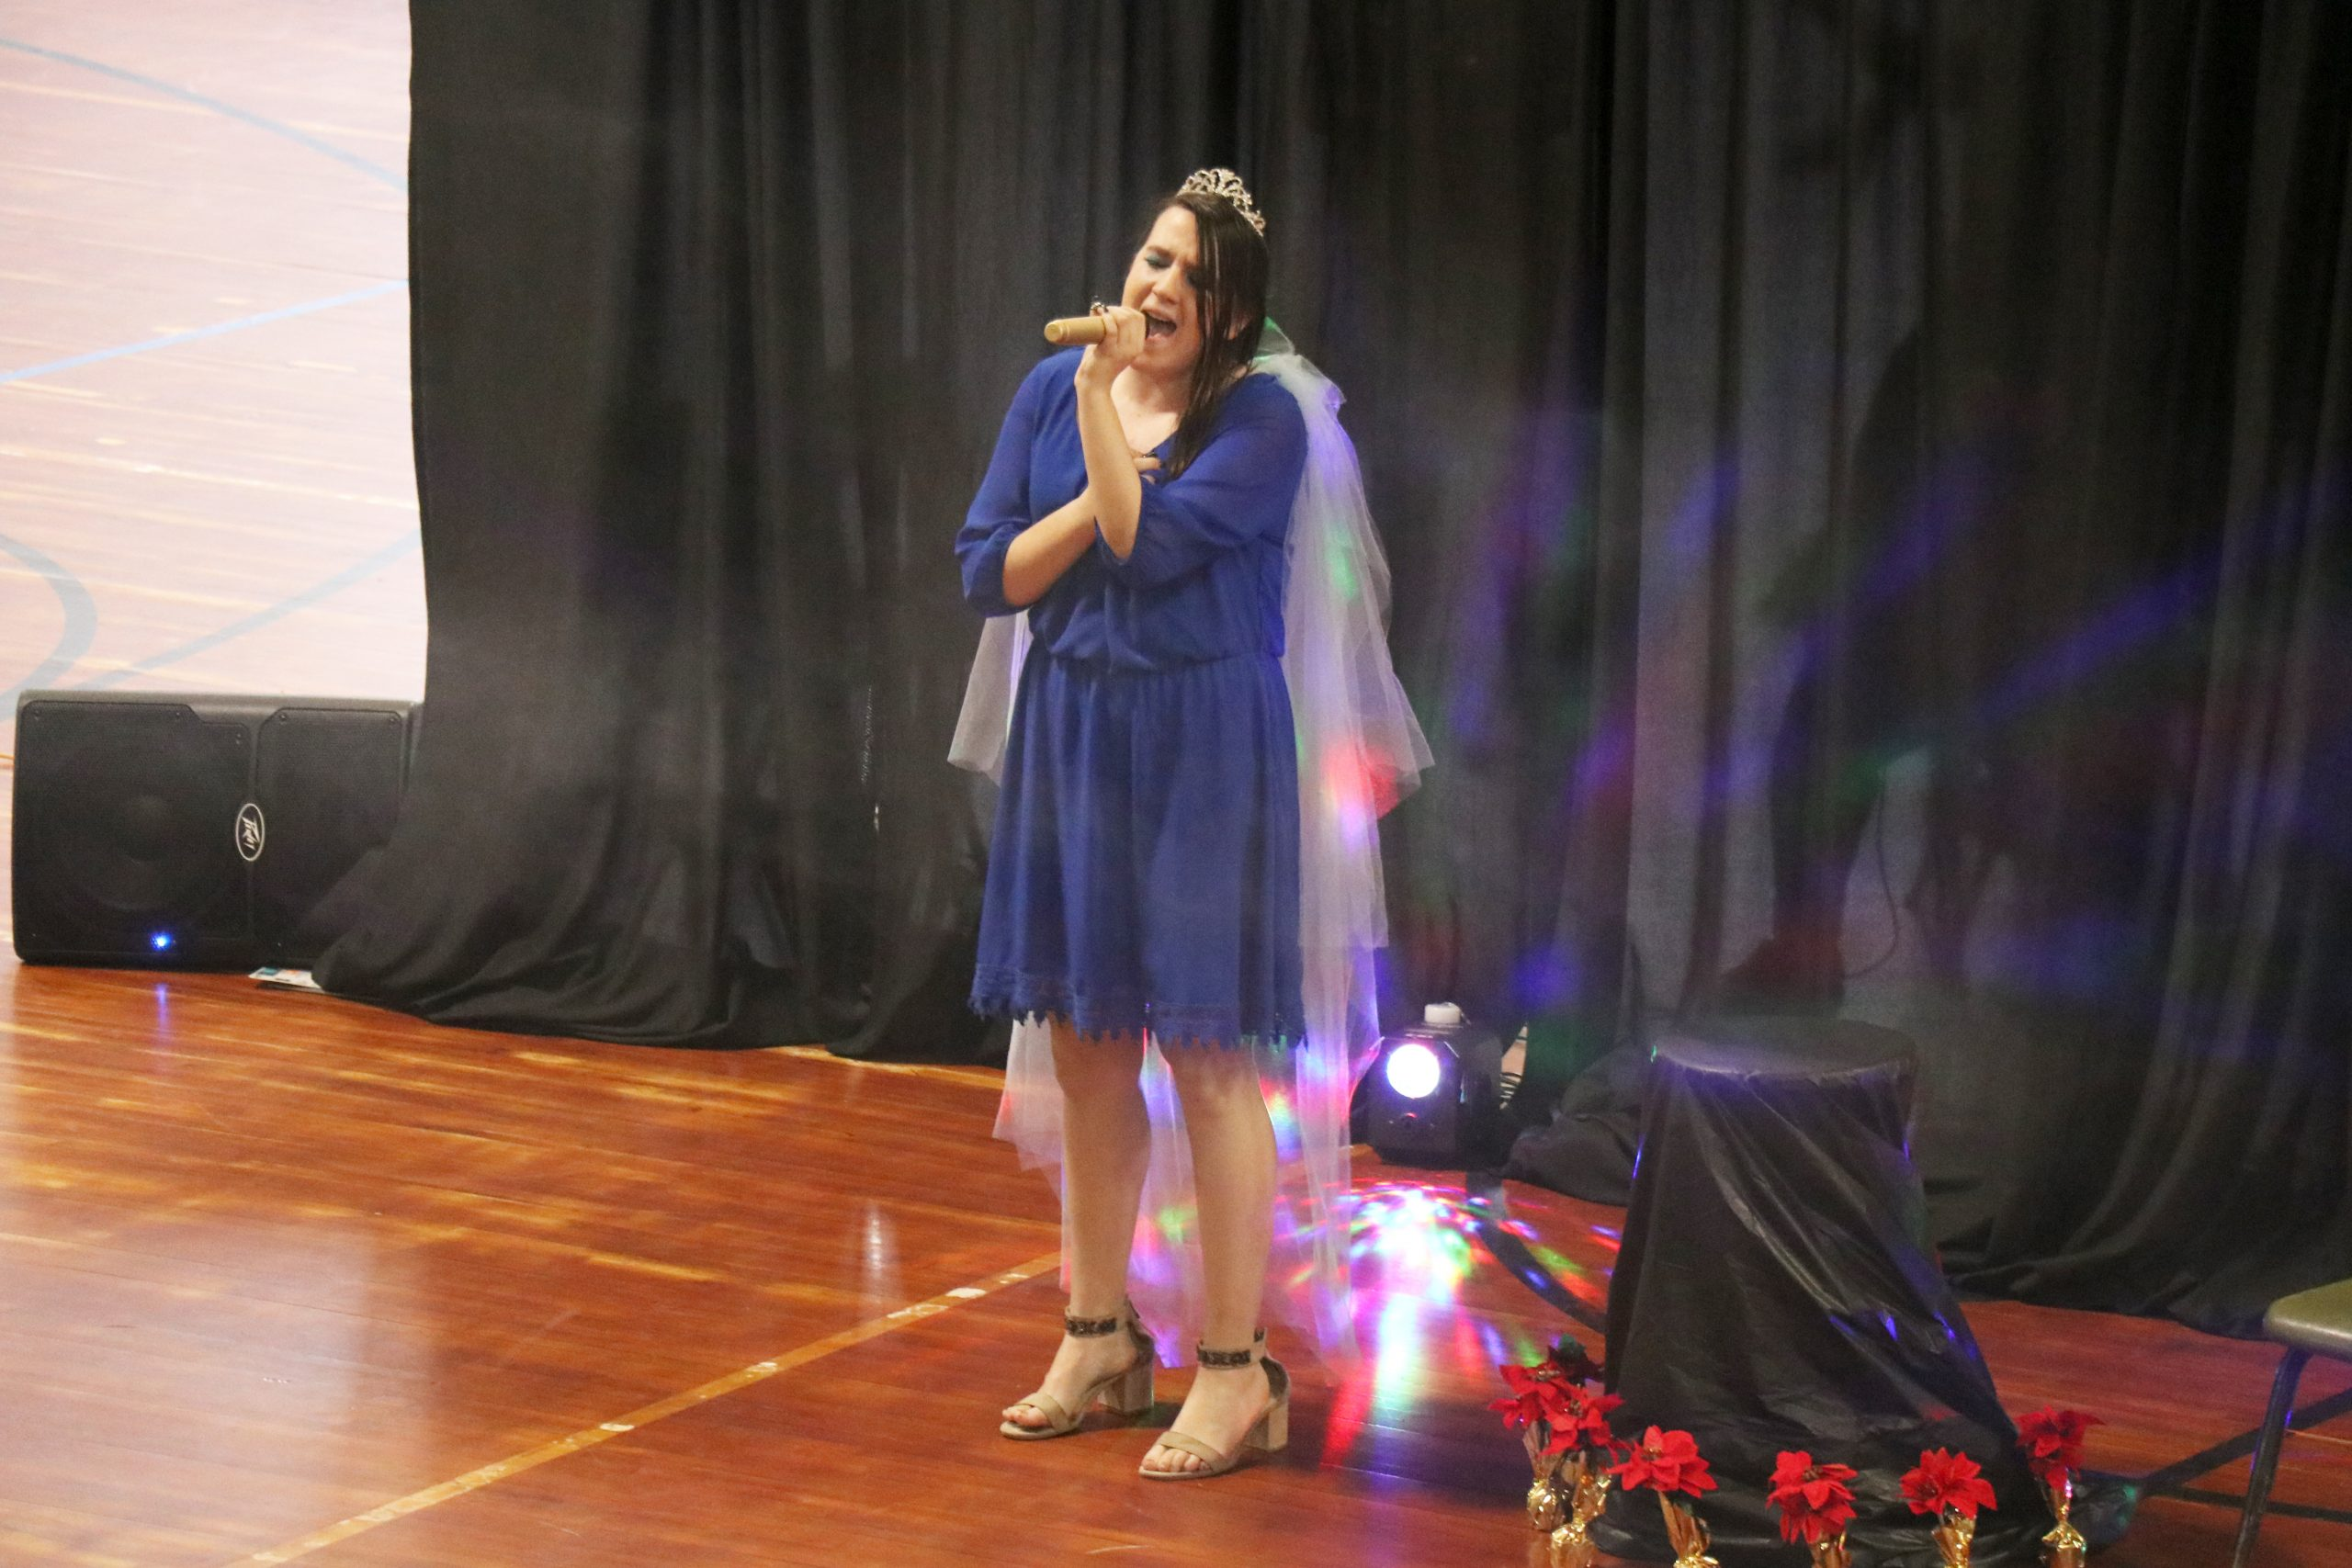 young girl in purple dress singing